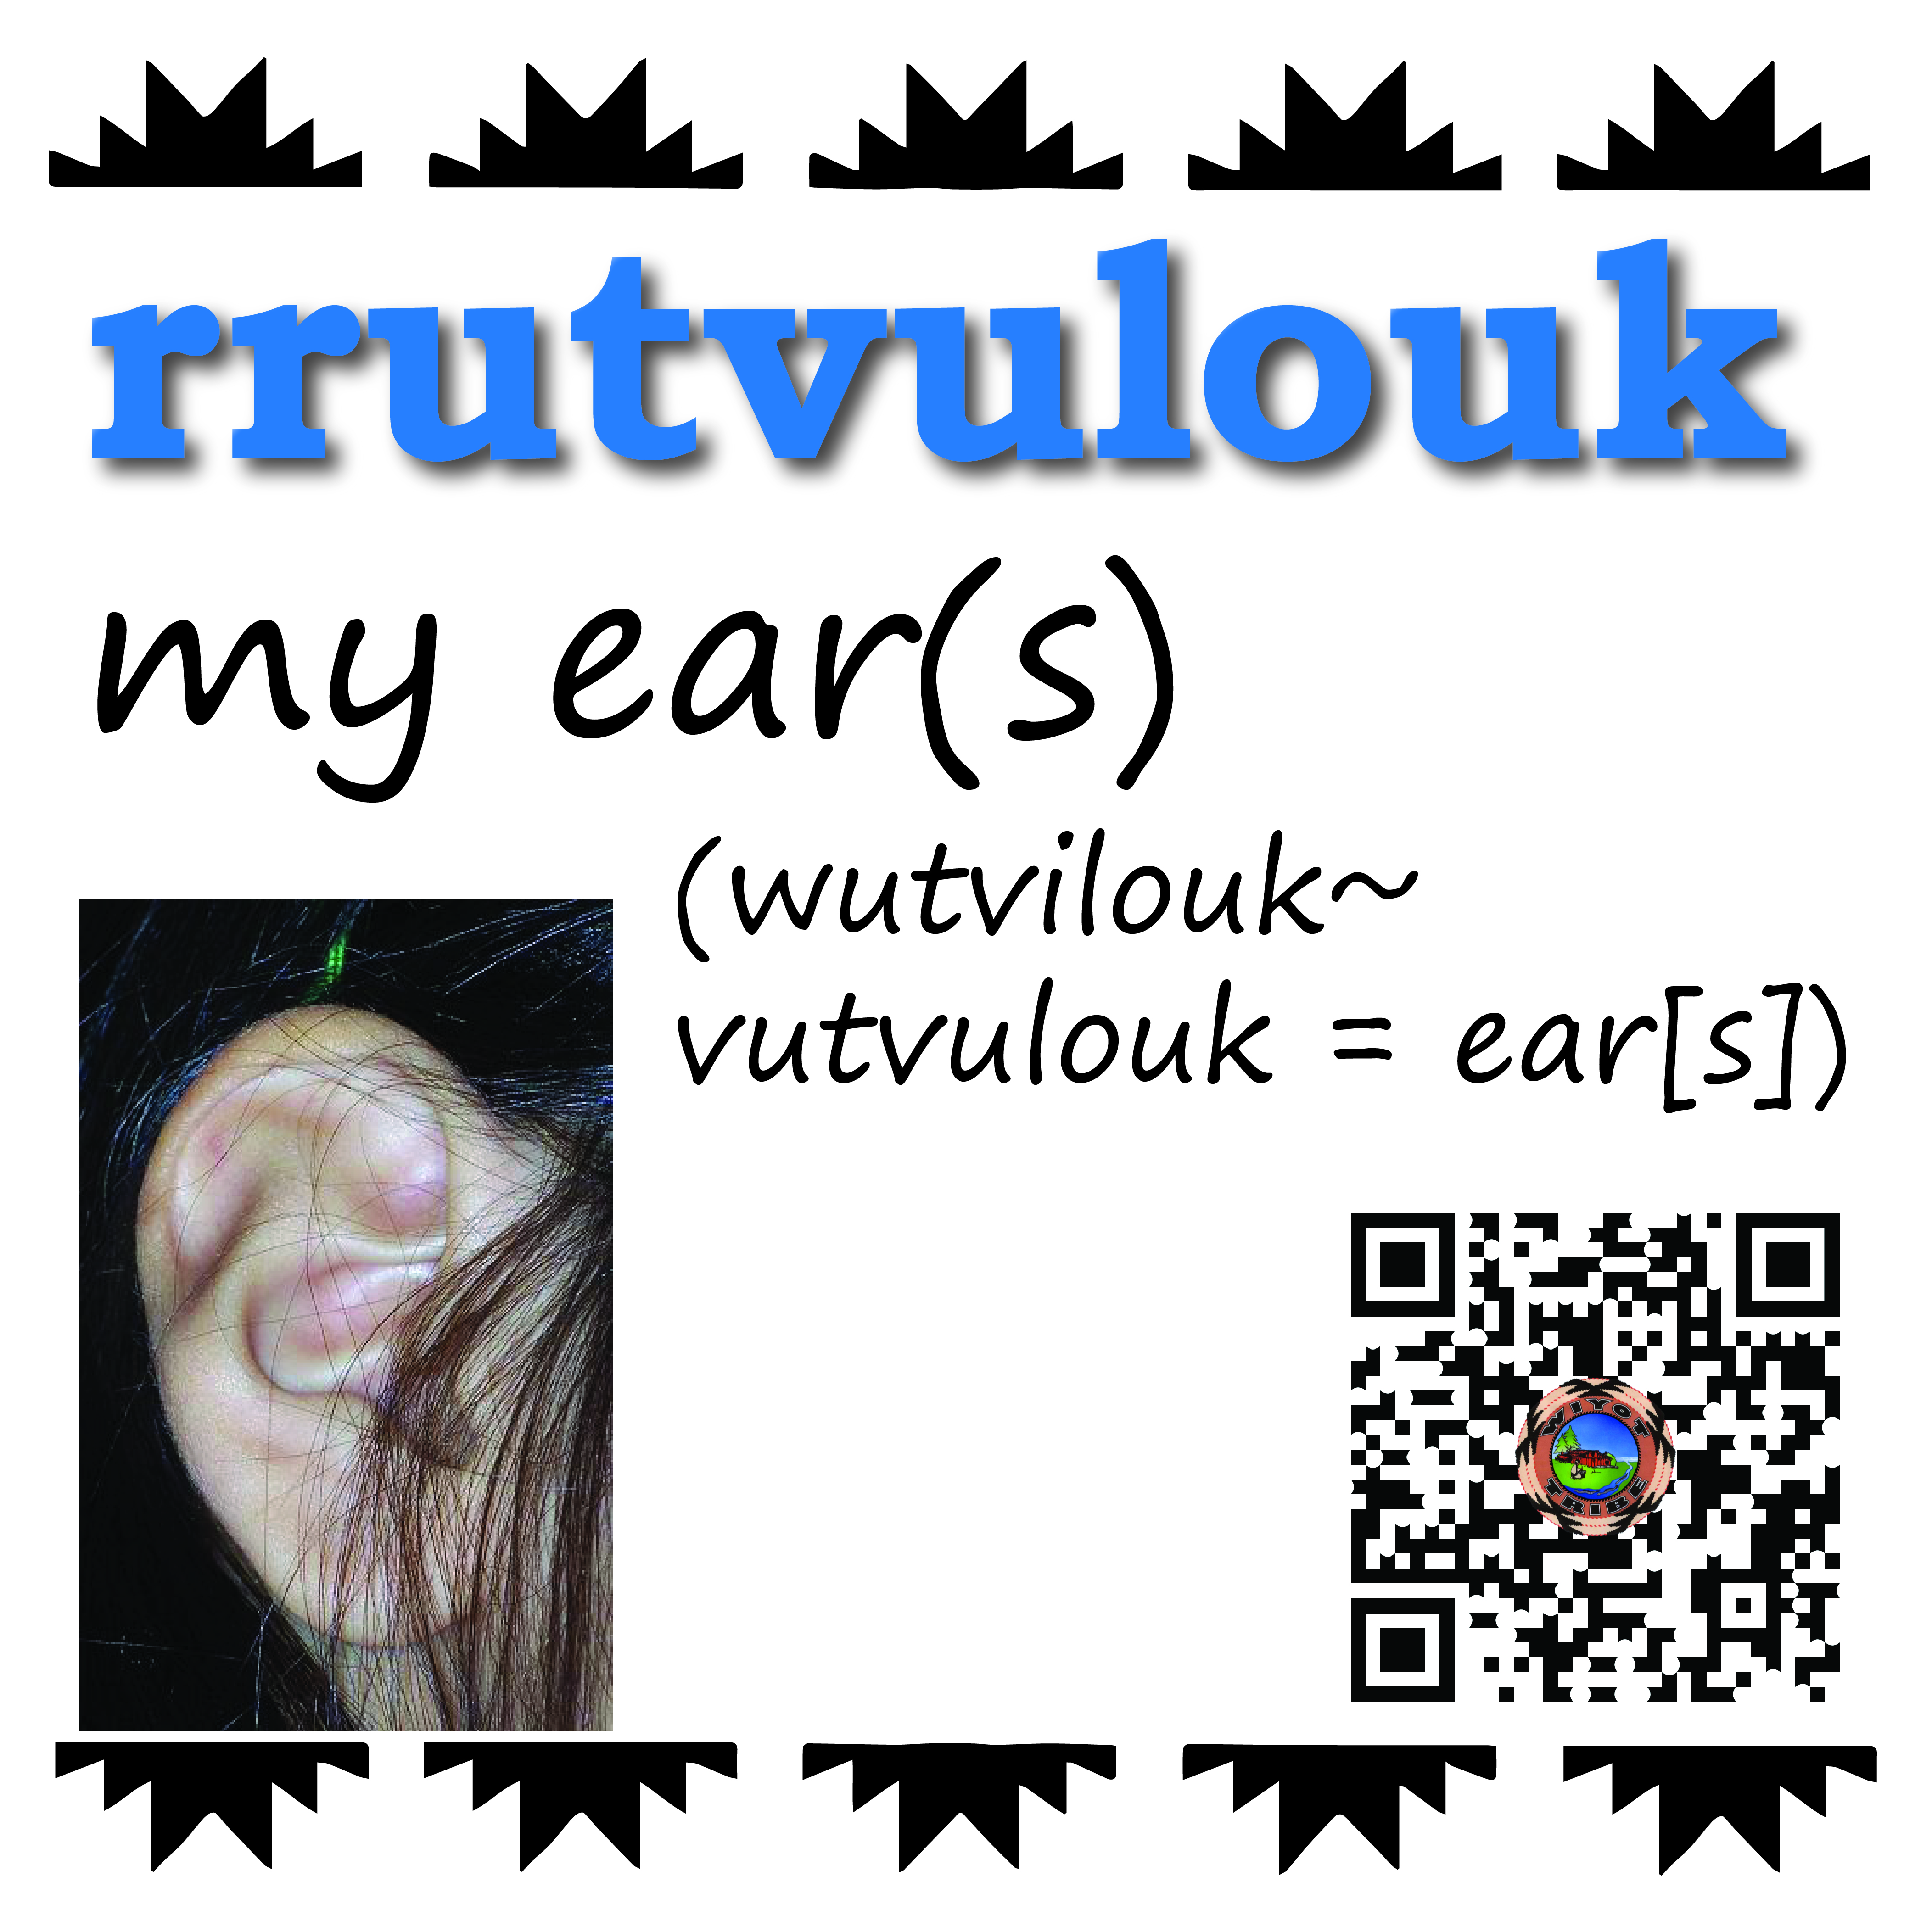 rrutvulouk_my_ears